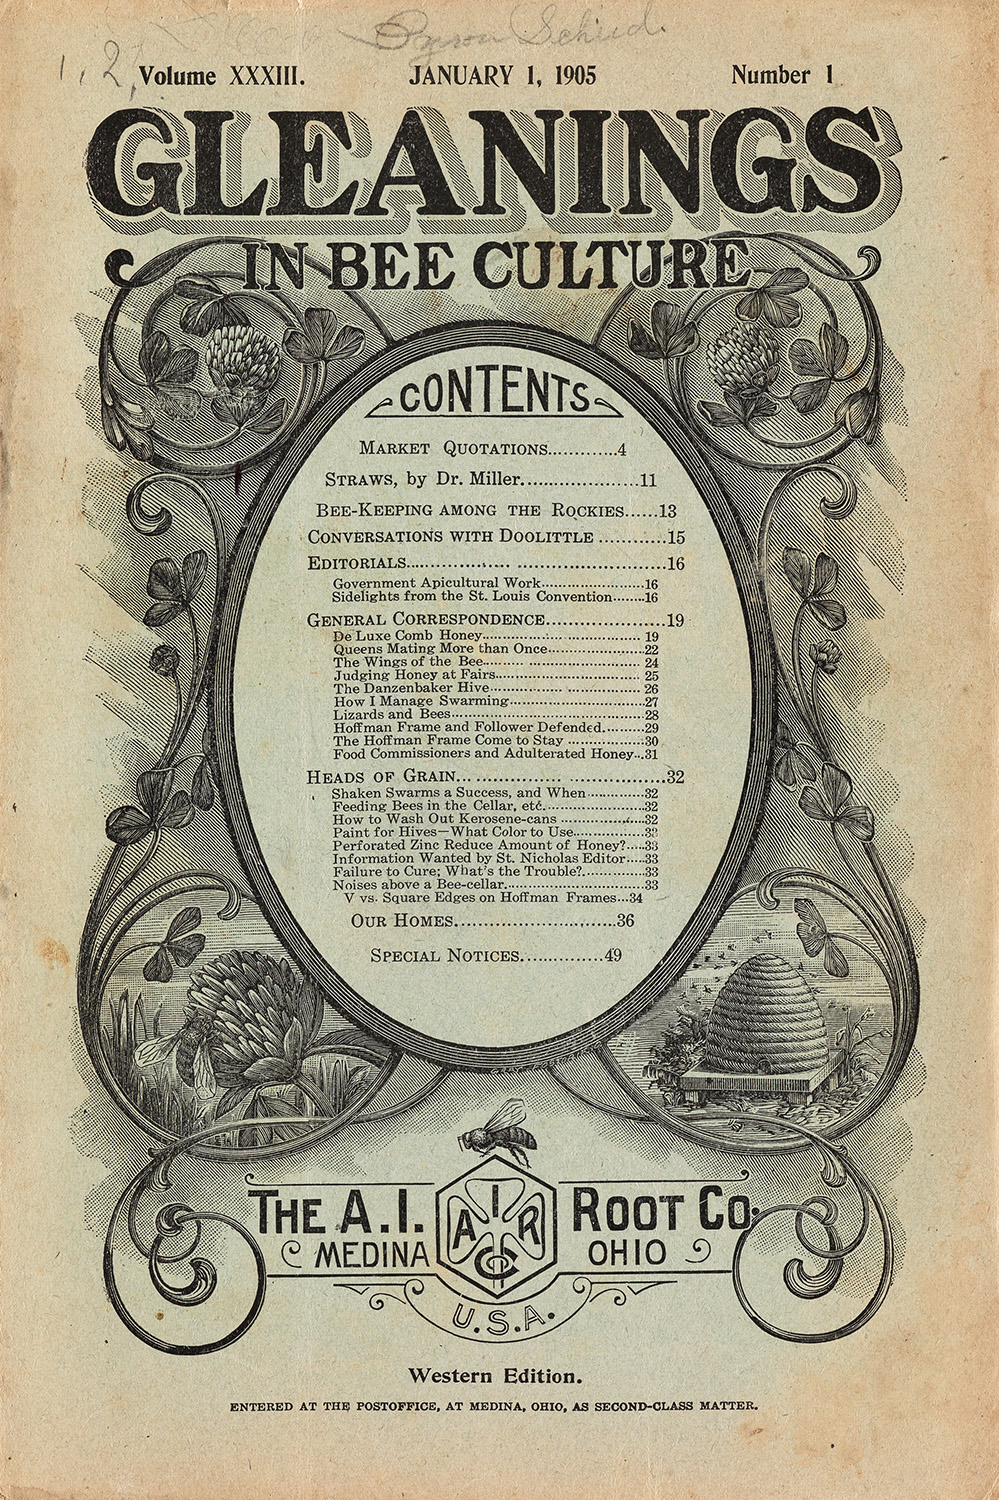 The cover of the January 1, 1905 issue of Gleanings in Bee Culture, from an early 20th-century group of 14 issues of the specialist magazine.